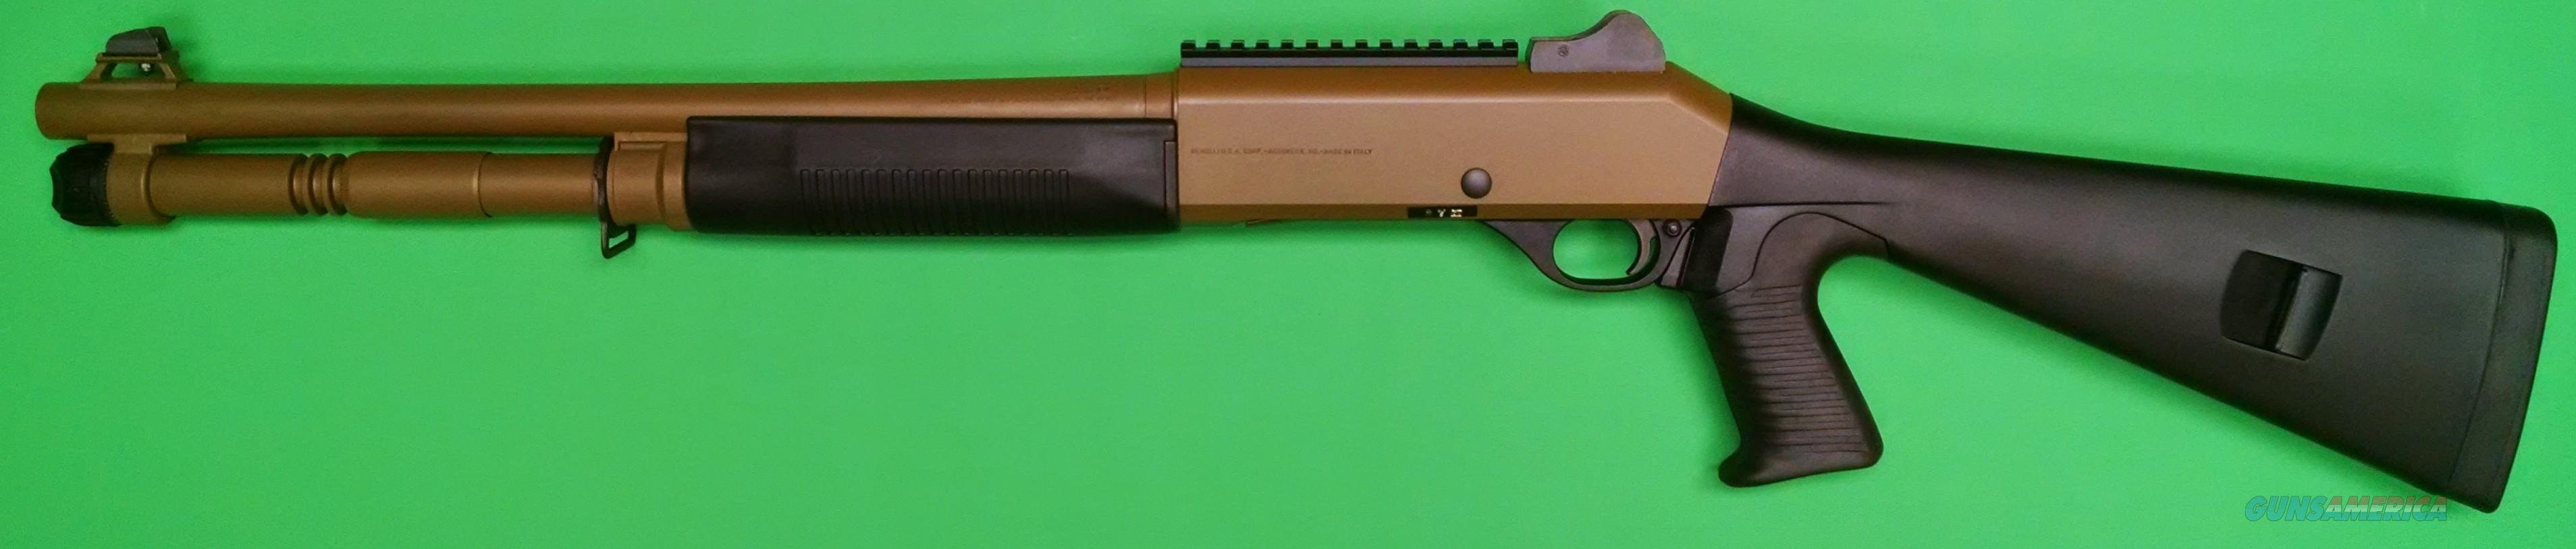 Benelli m2 tactical reviews - 9998114 Jpg